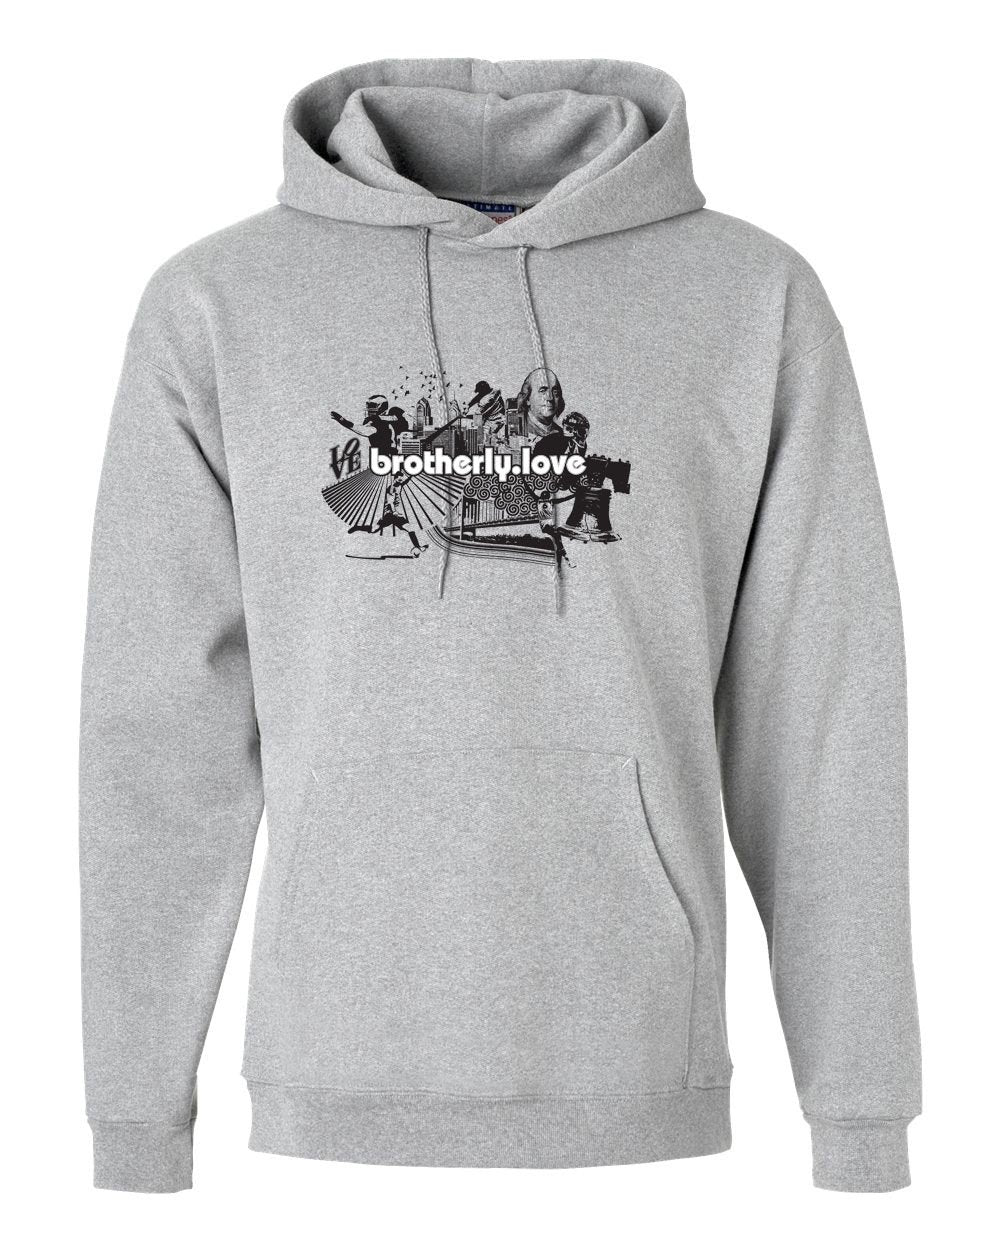 Brotherly Love V1 Hoodie